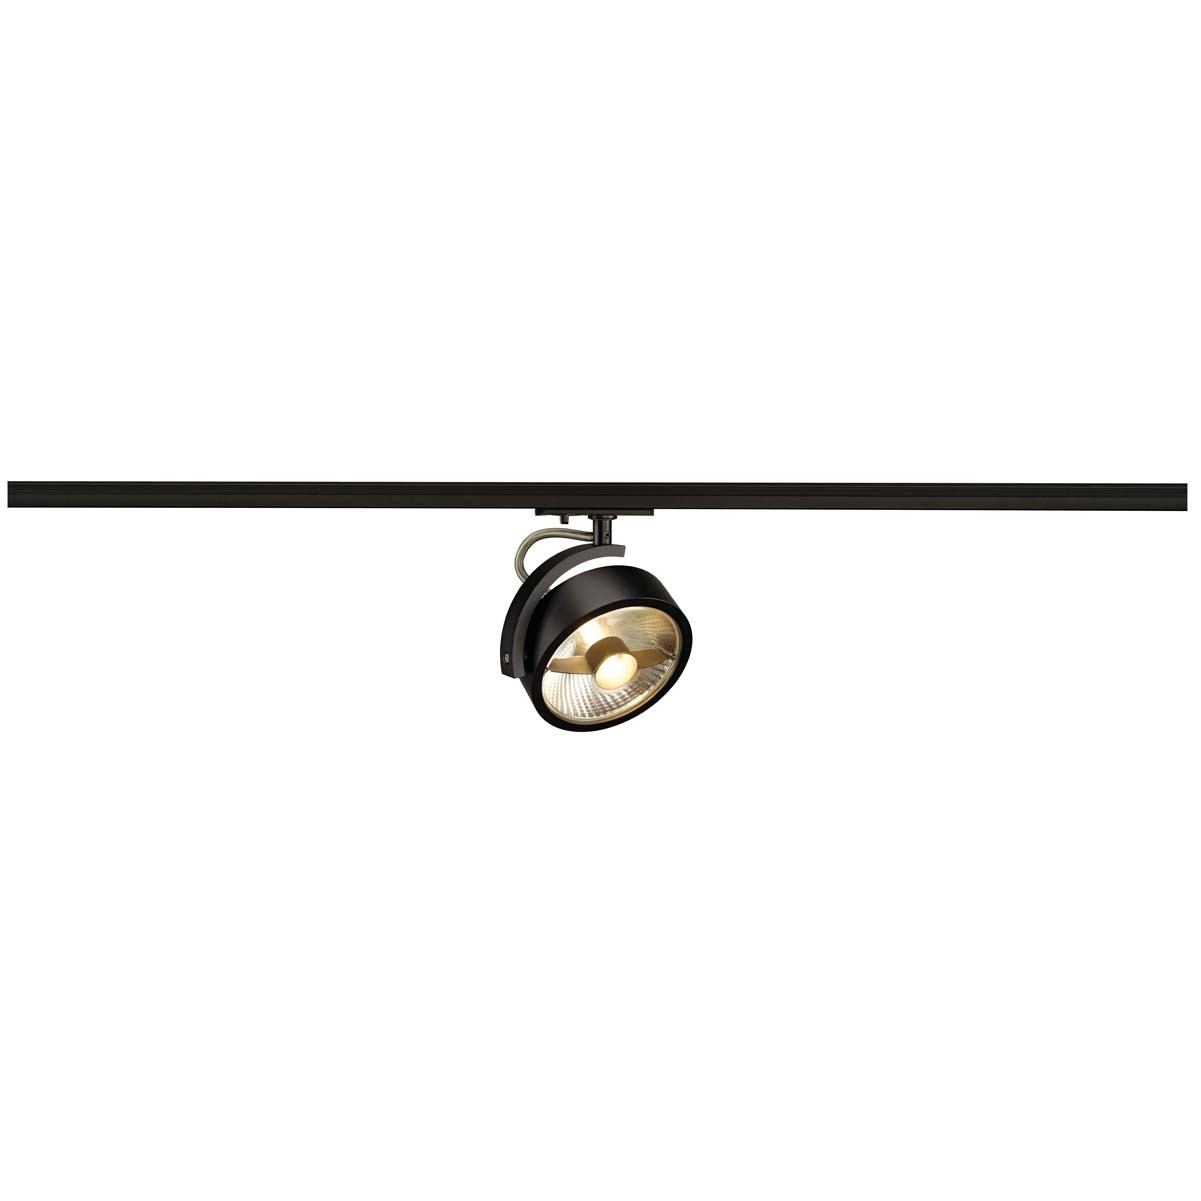 SLV 143540 Kalu Track QPAR 75W Black 1 Circuit 240V Track Light